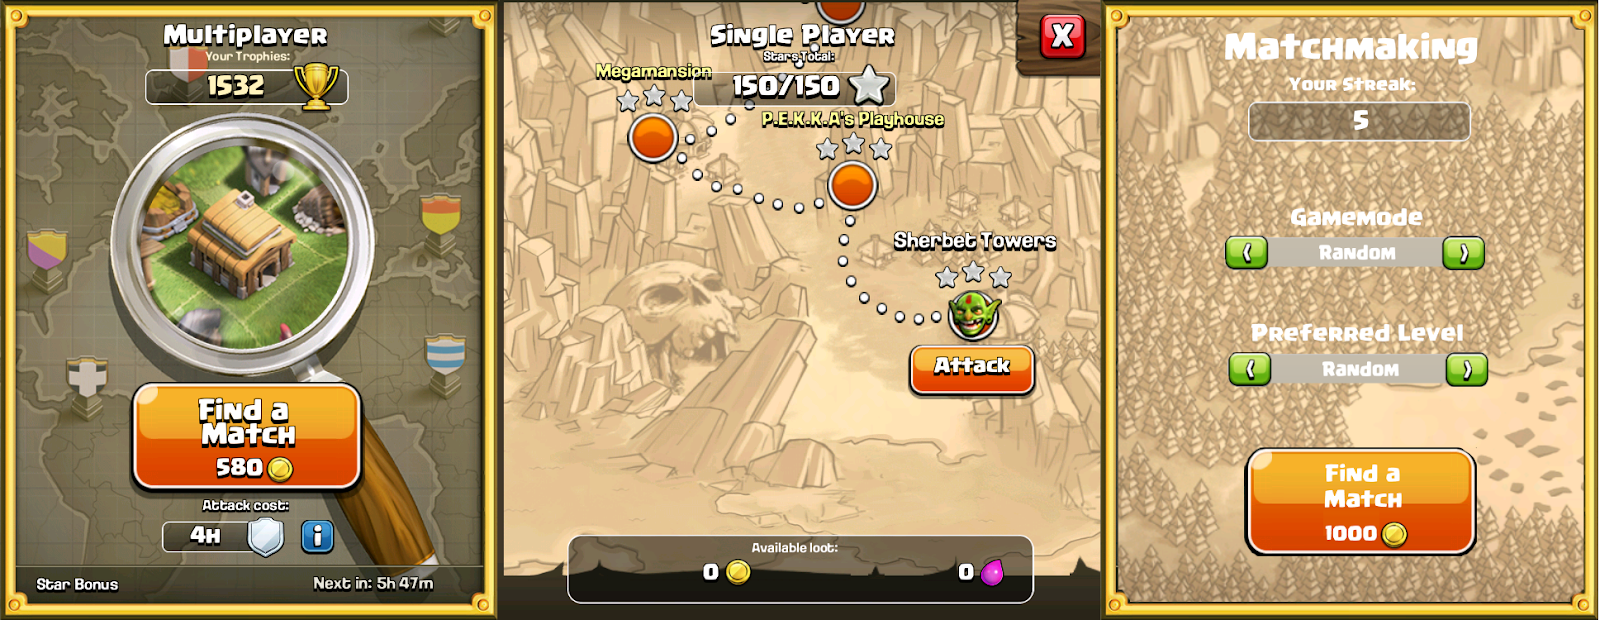 Multiplayer matchmaking coc